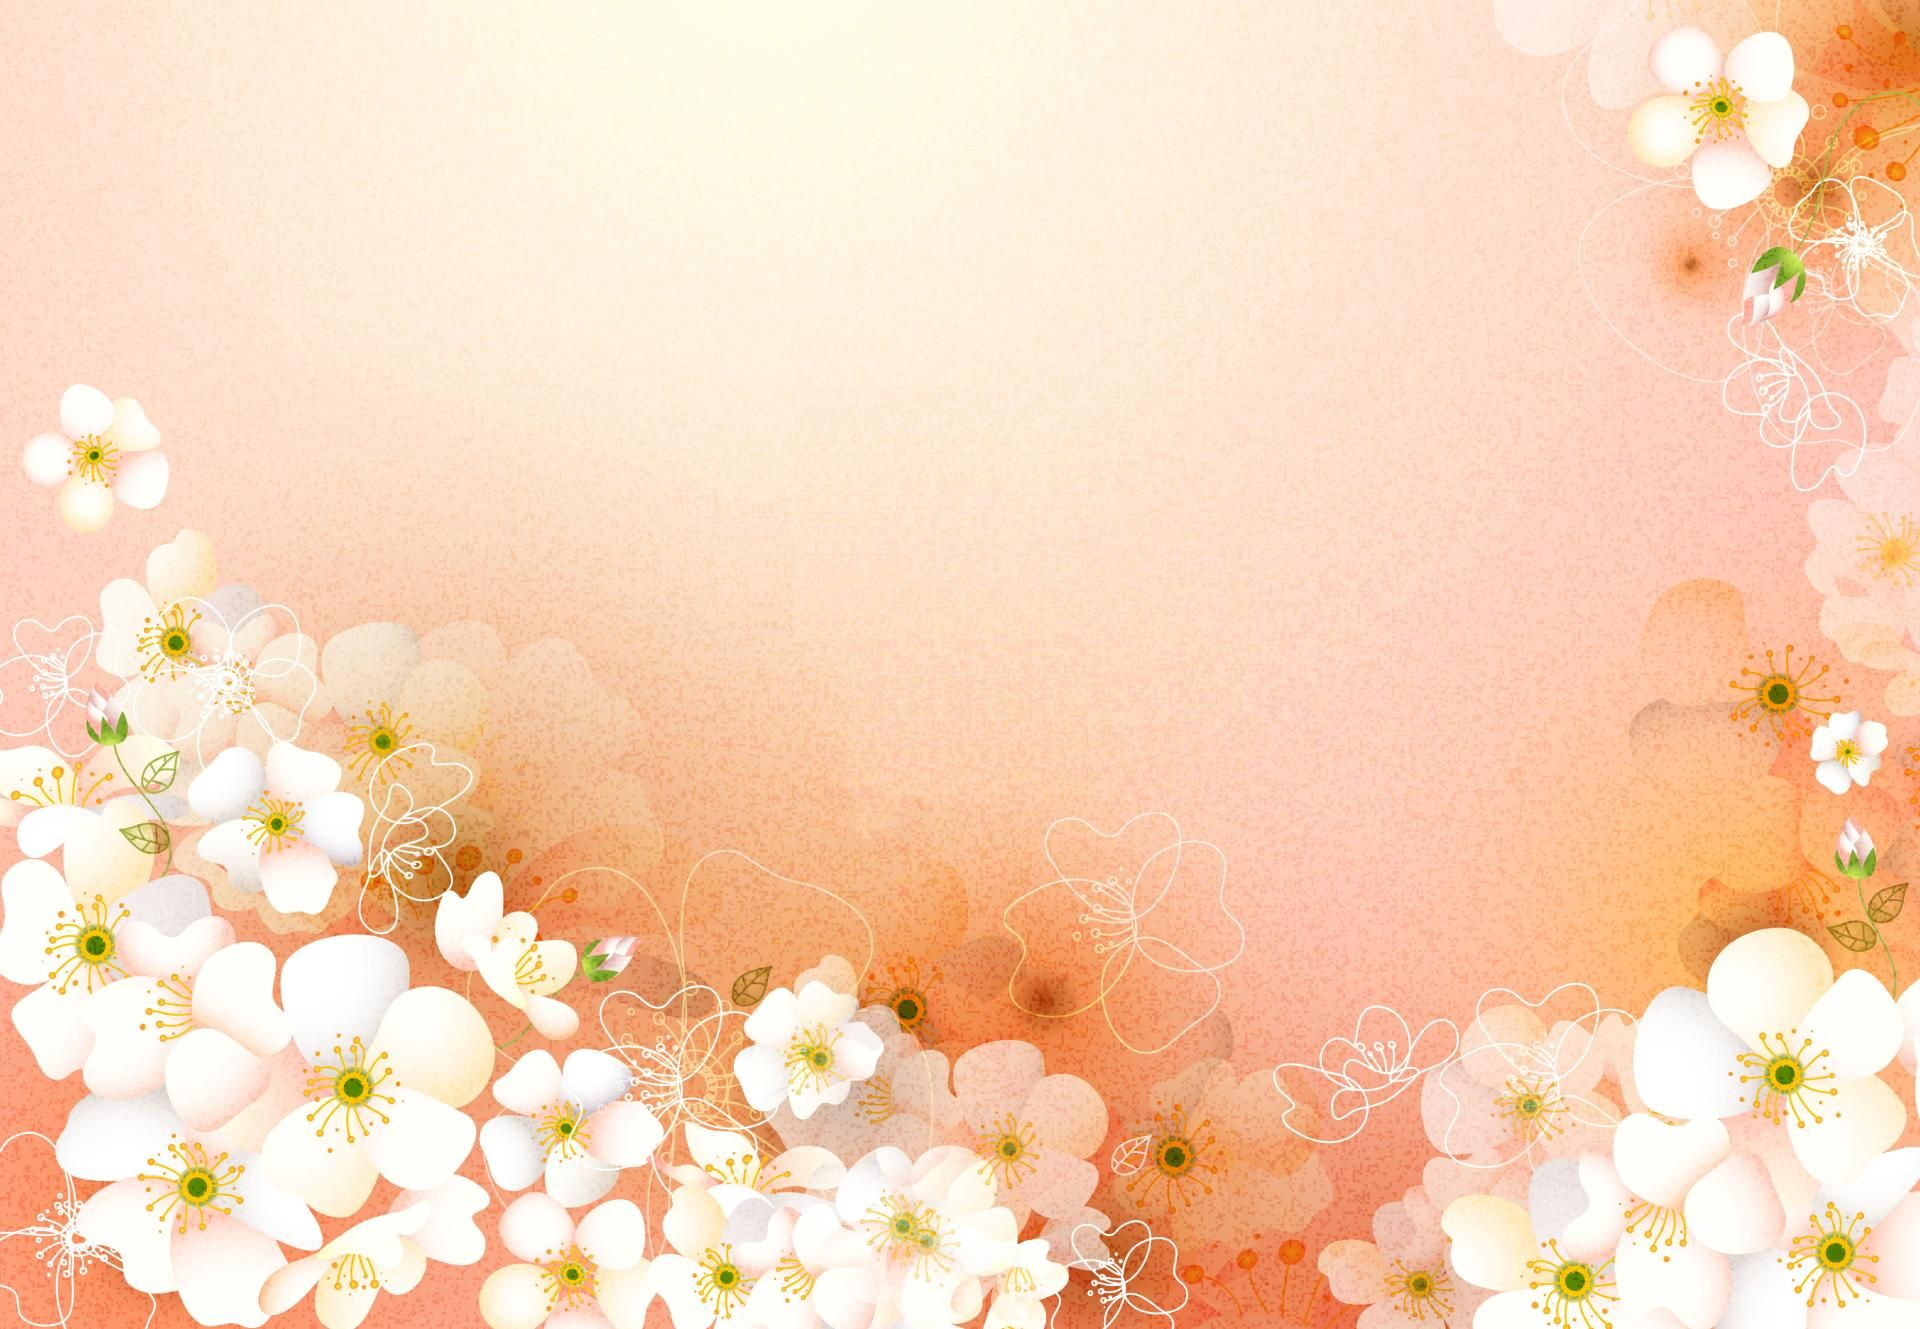 peach floral background google search flower backgrounds peach flowers background hd wallpaper flower backgrounds peach flowers